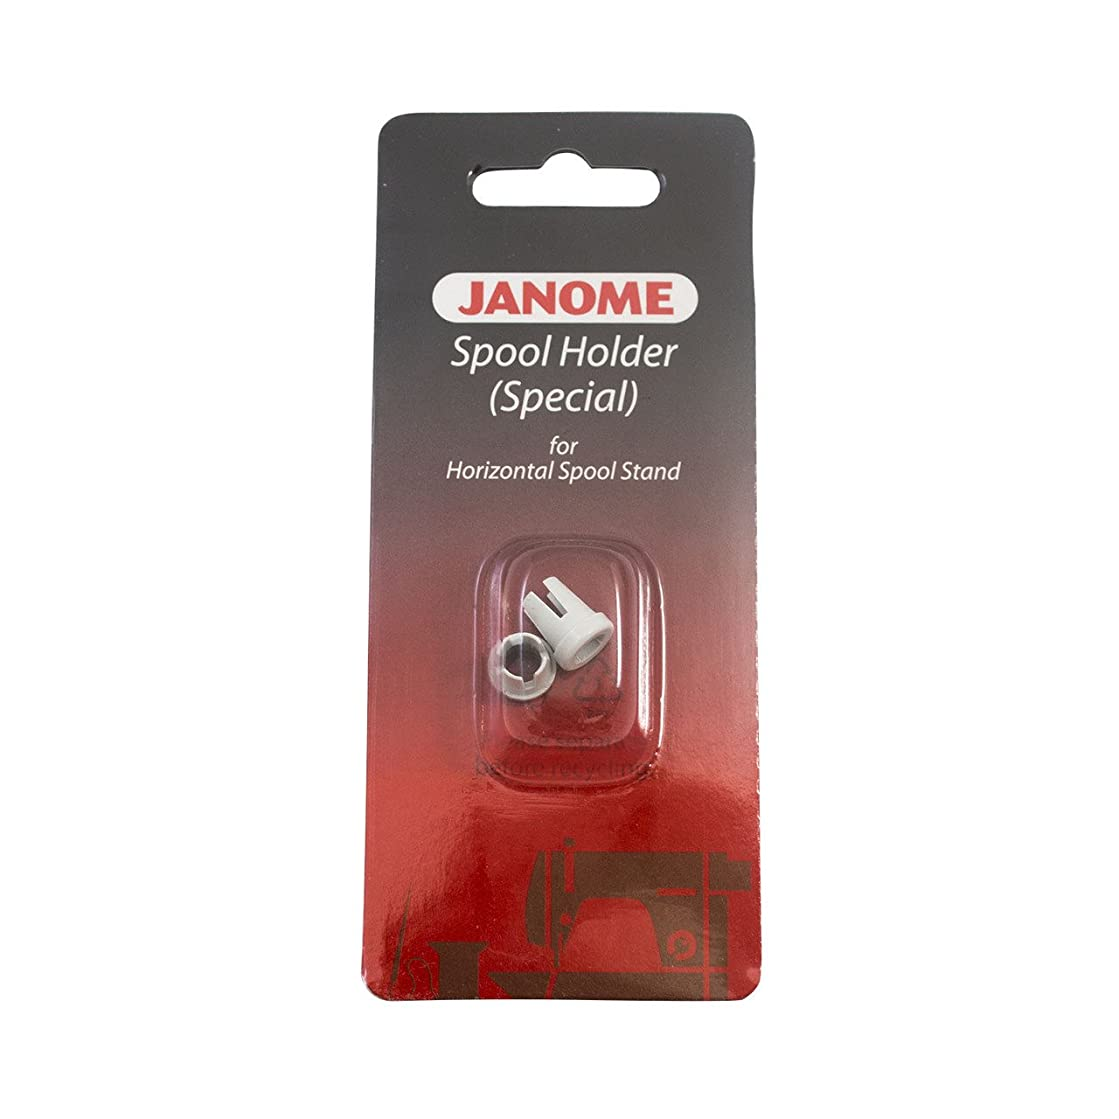 Janome Special Spool Holder for Horizontal Spool Stand